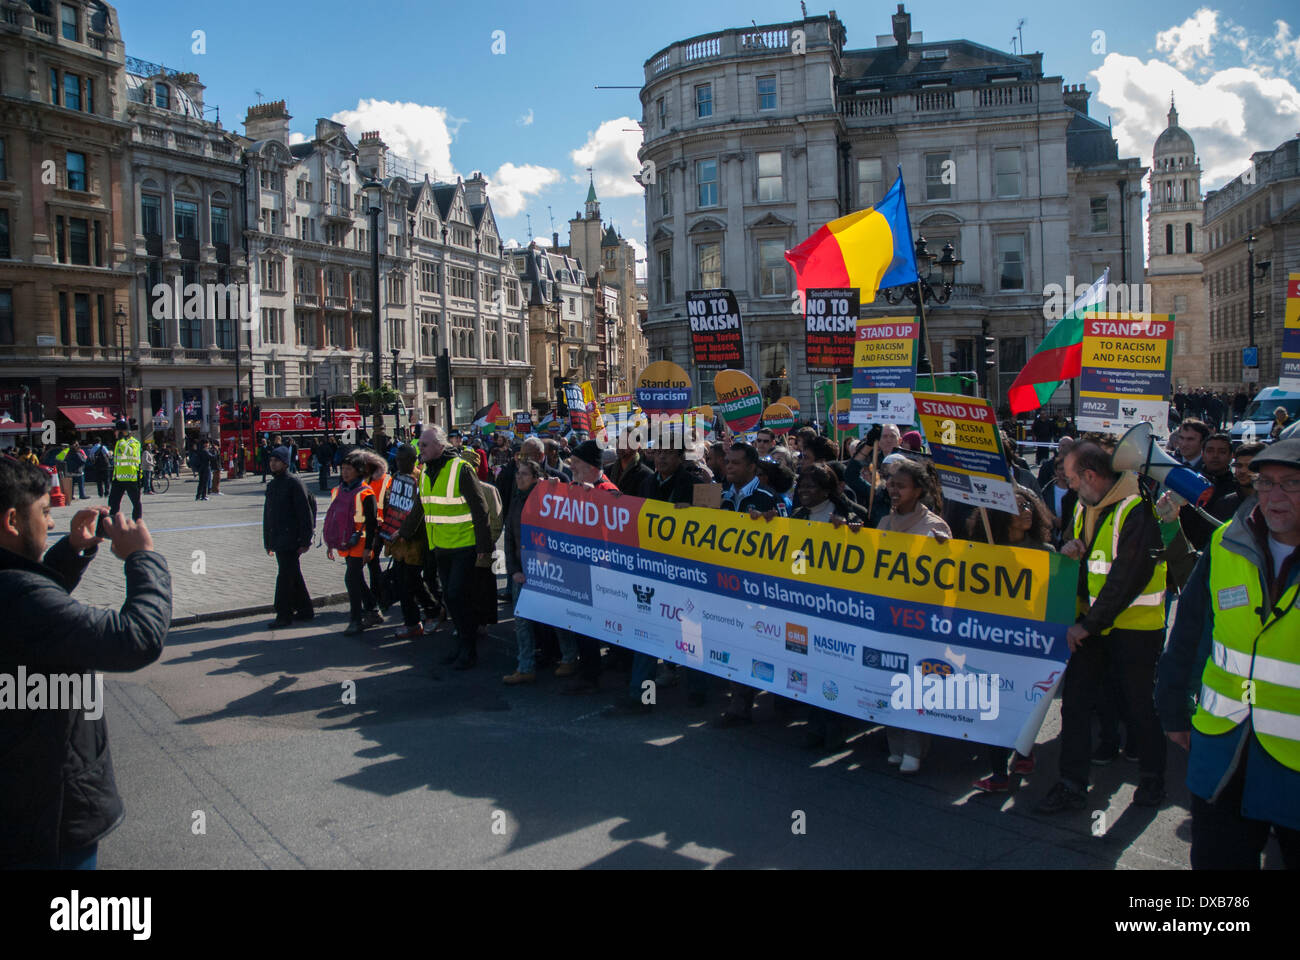 London, UK. 22nd March 2014. The Anti-Racism rally moves towards central London's Trafalgar Square as people hold large banners. Credit:  Peter Manning/Alamy Live News - Stock Image